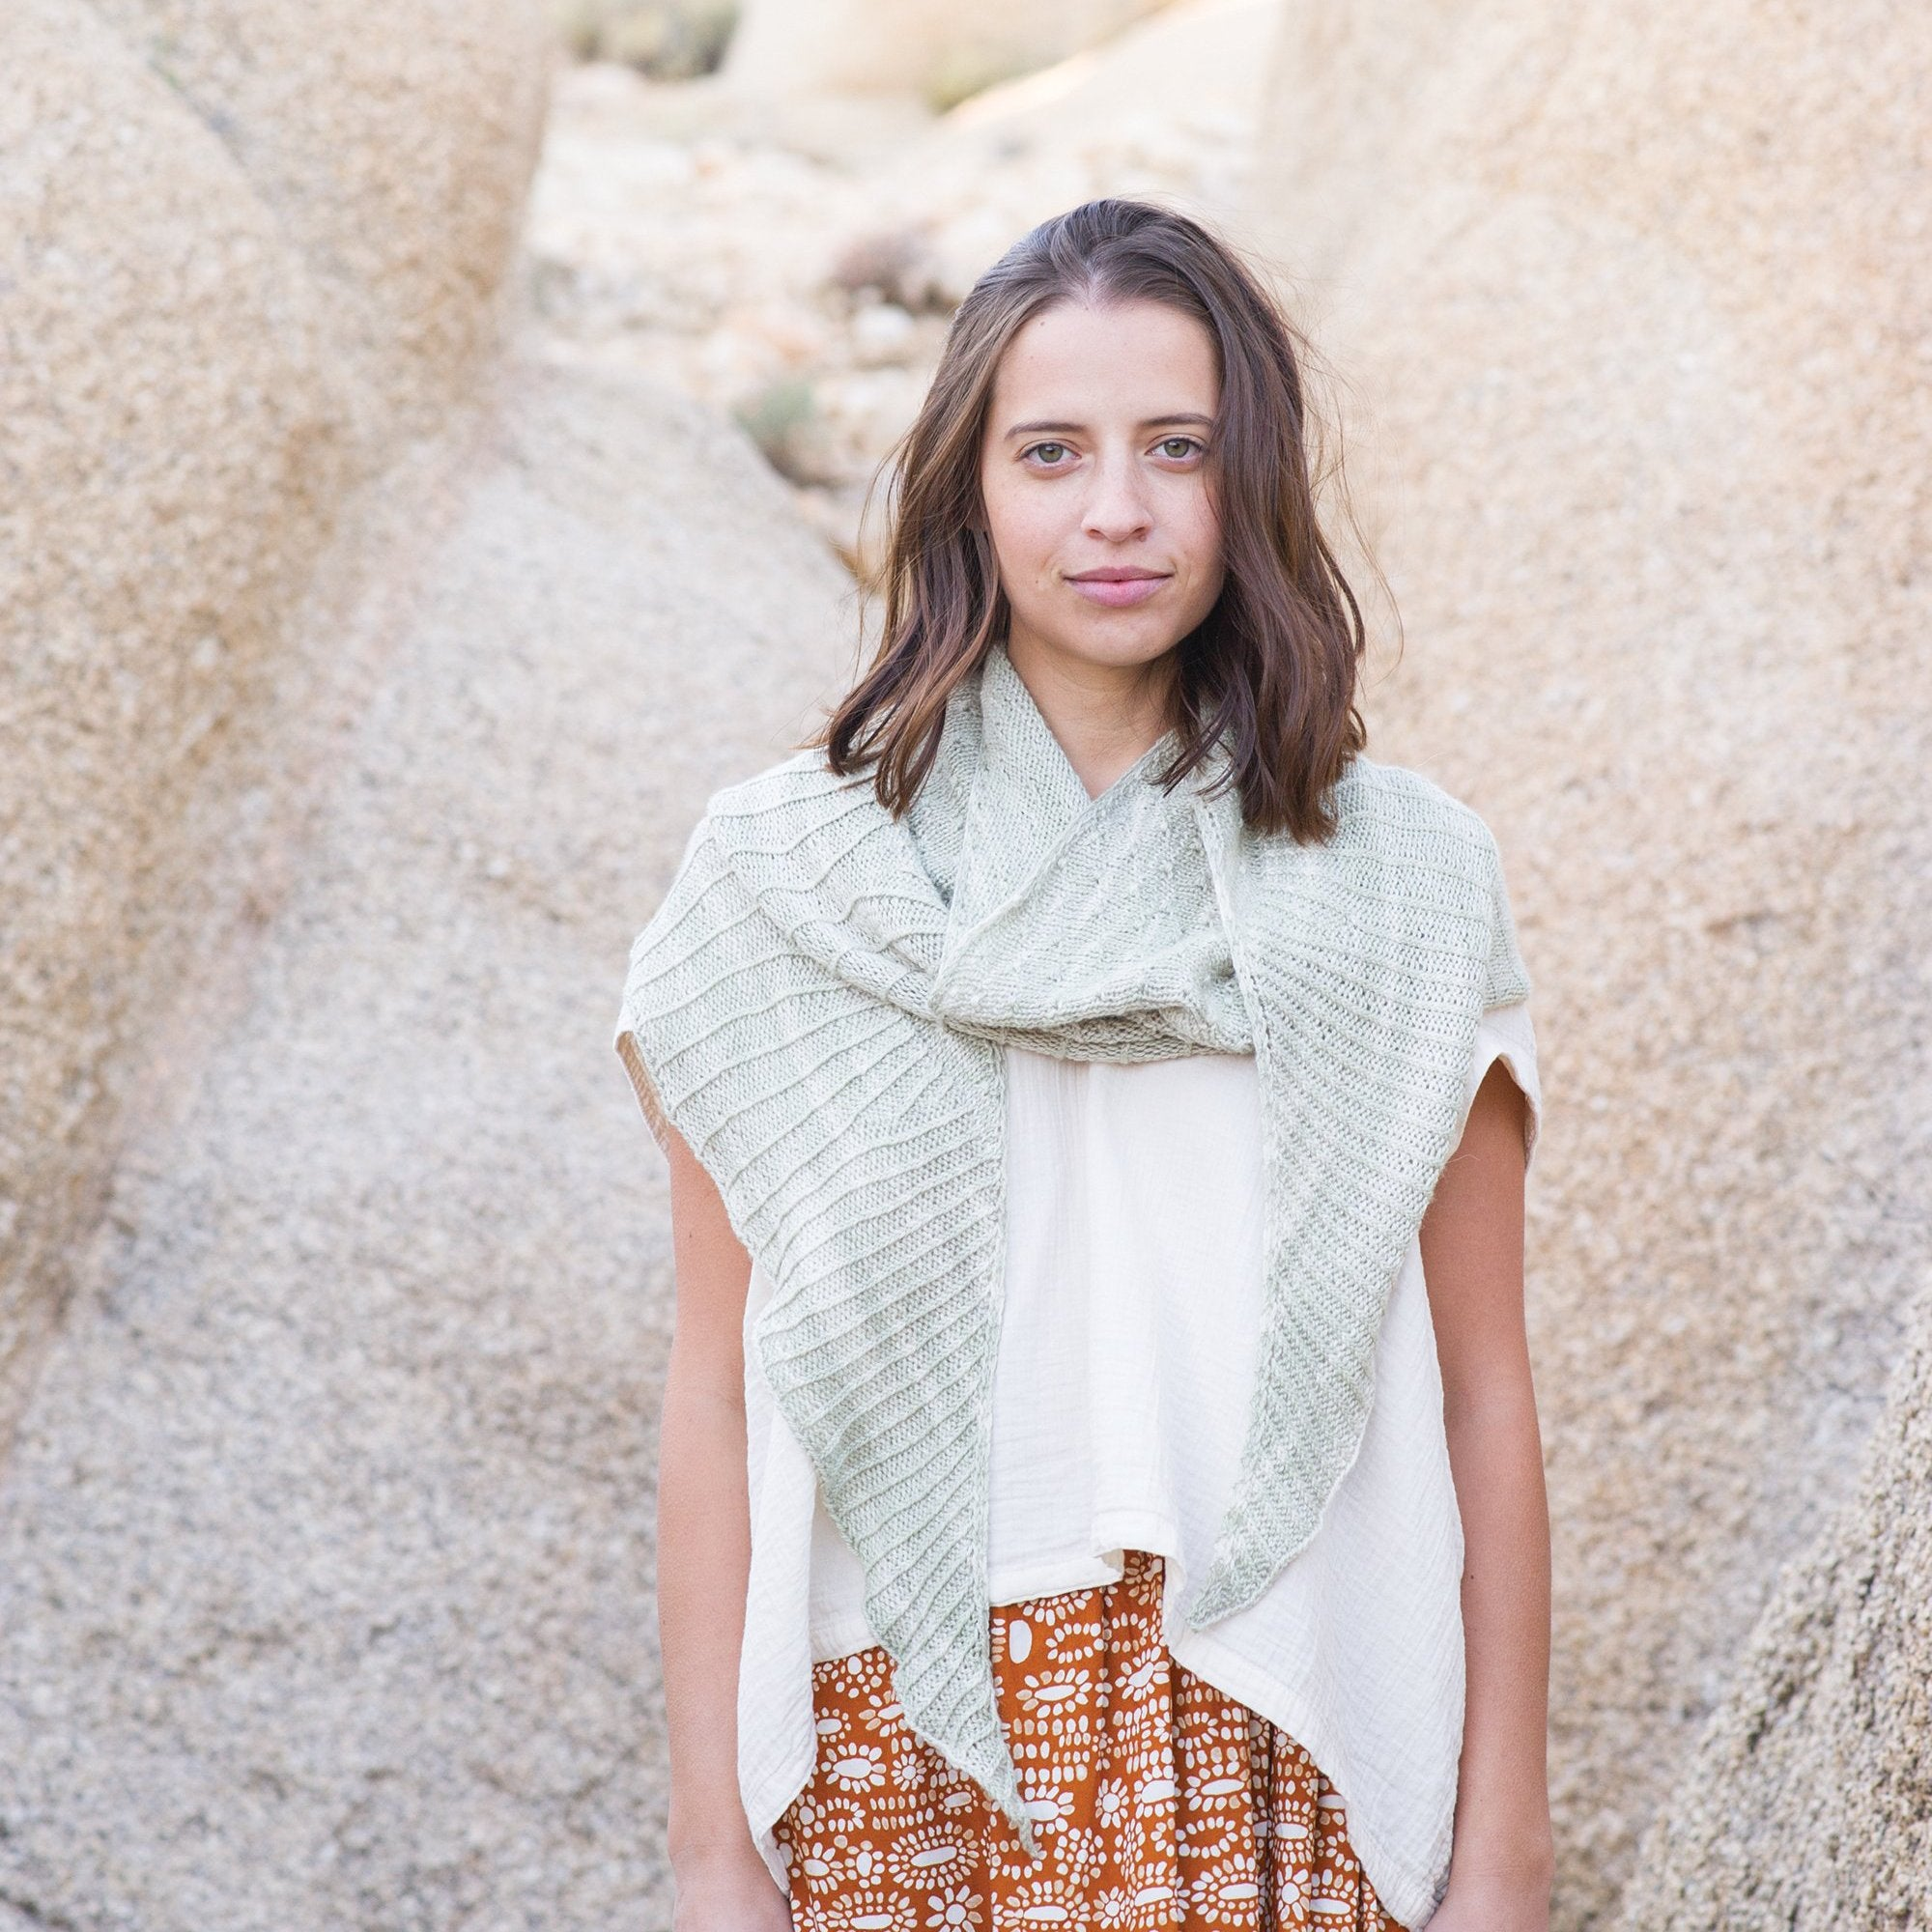 AVFKW x Amy van de Laar - Xerophyte Shawl Kit - SOLD OUT